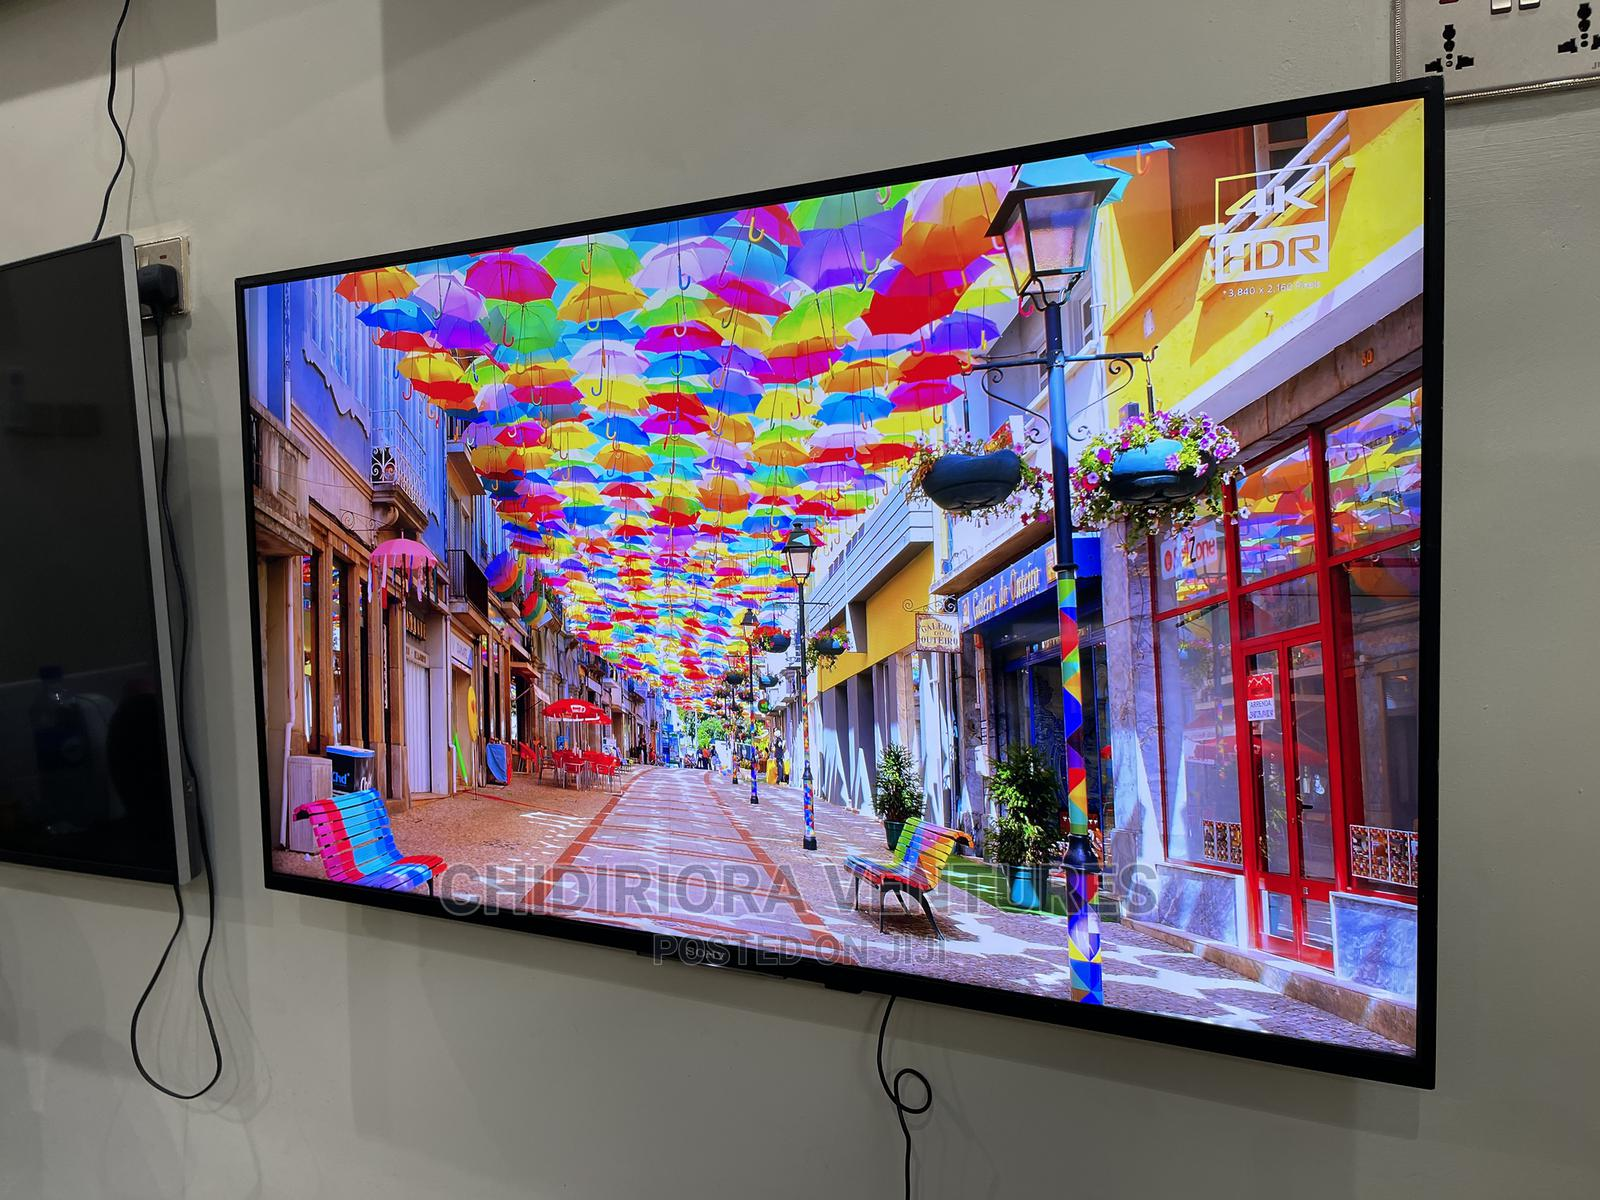 """Sony Bravia Kd49xe8005 LED Hdr 4K Ultra HD Android Tv, 49"""""""